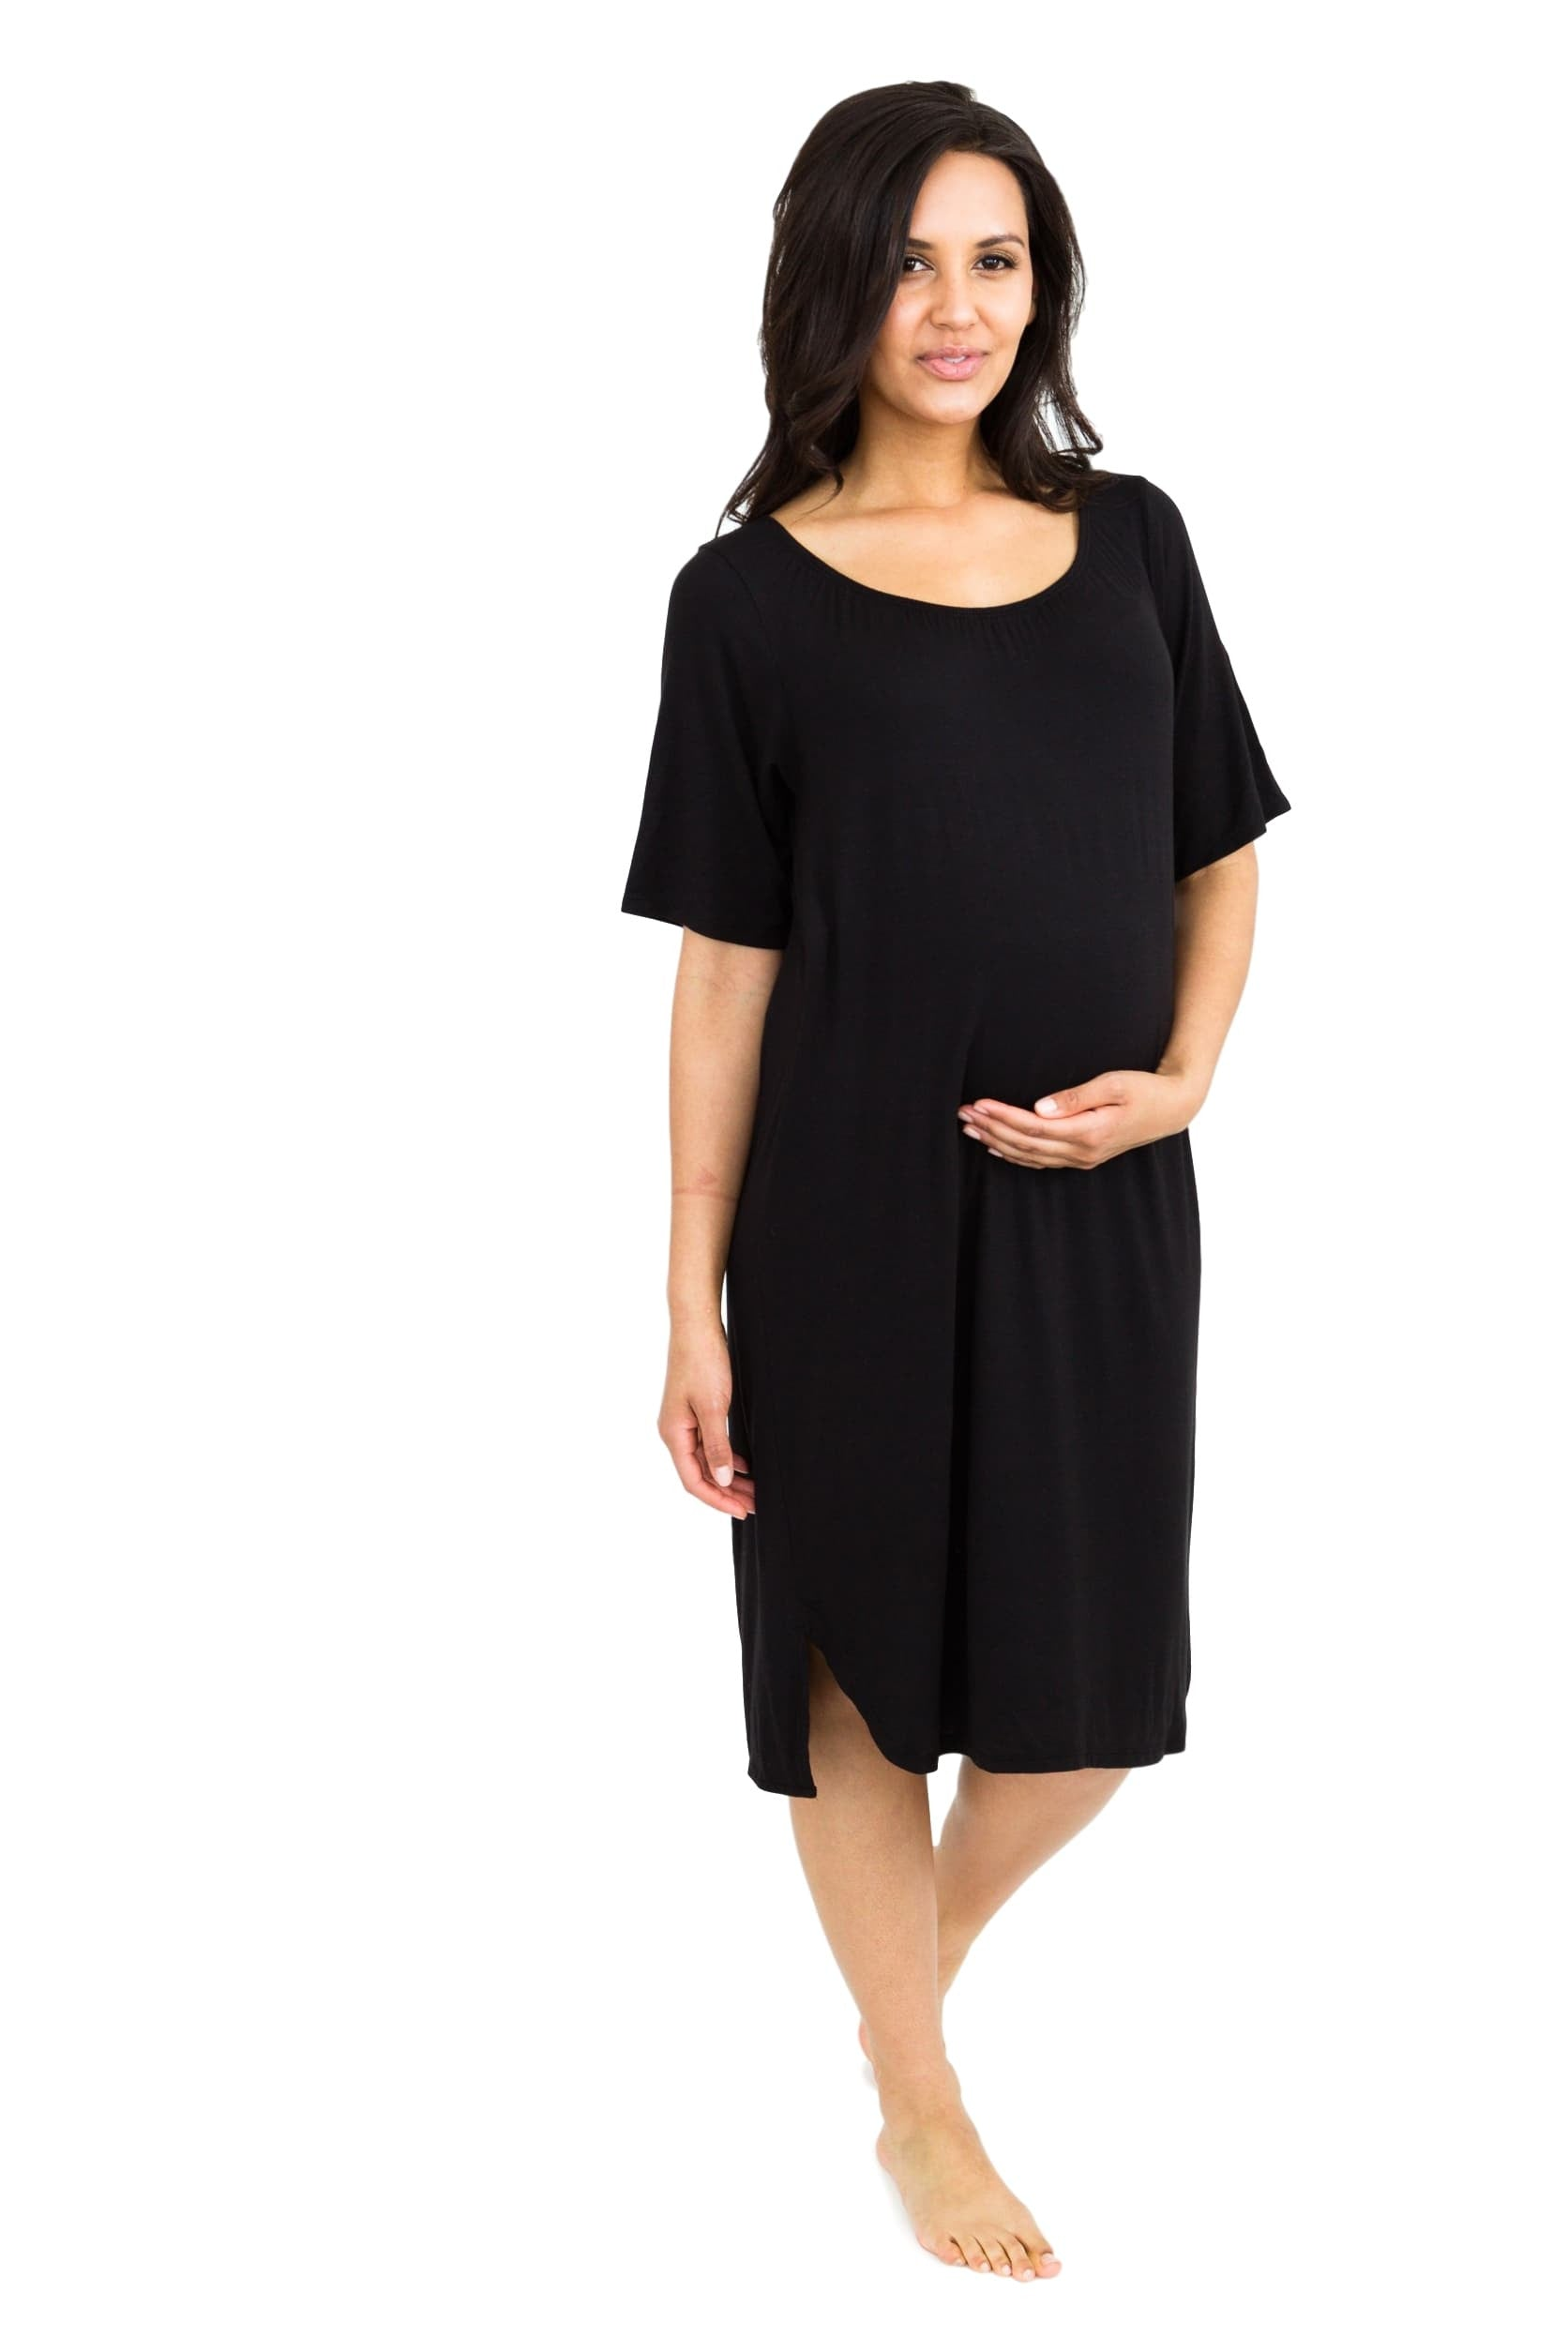 Off Shoulder T-Shirt Maternity/ Nursing Nightgown Dress Black